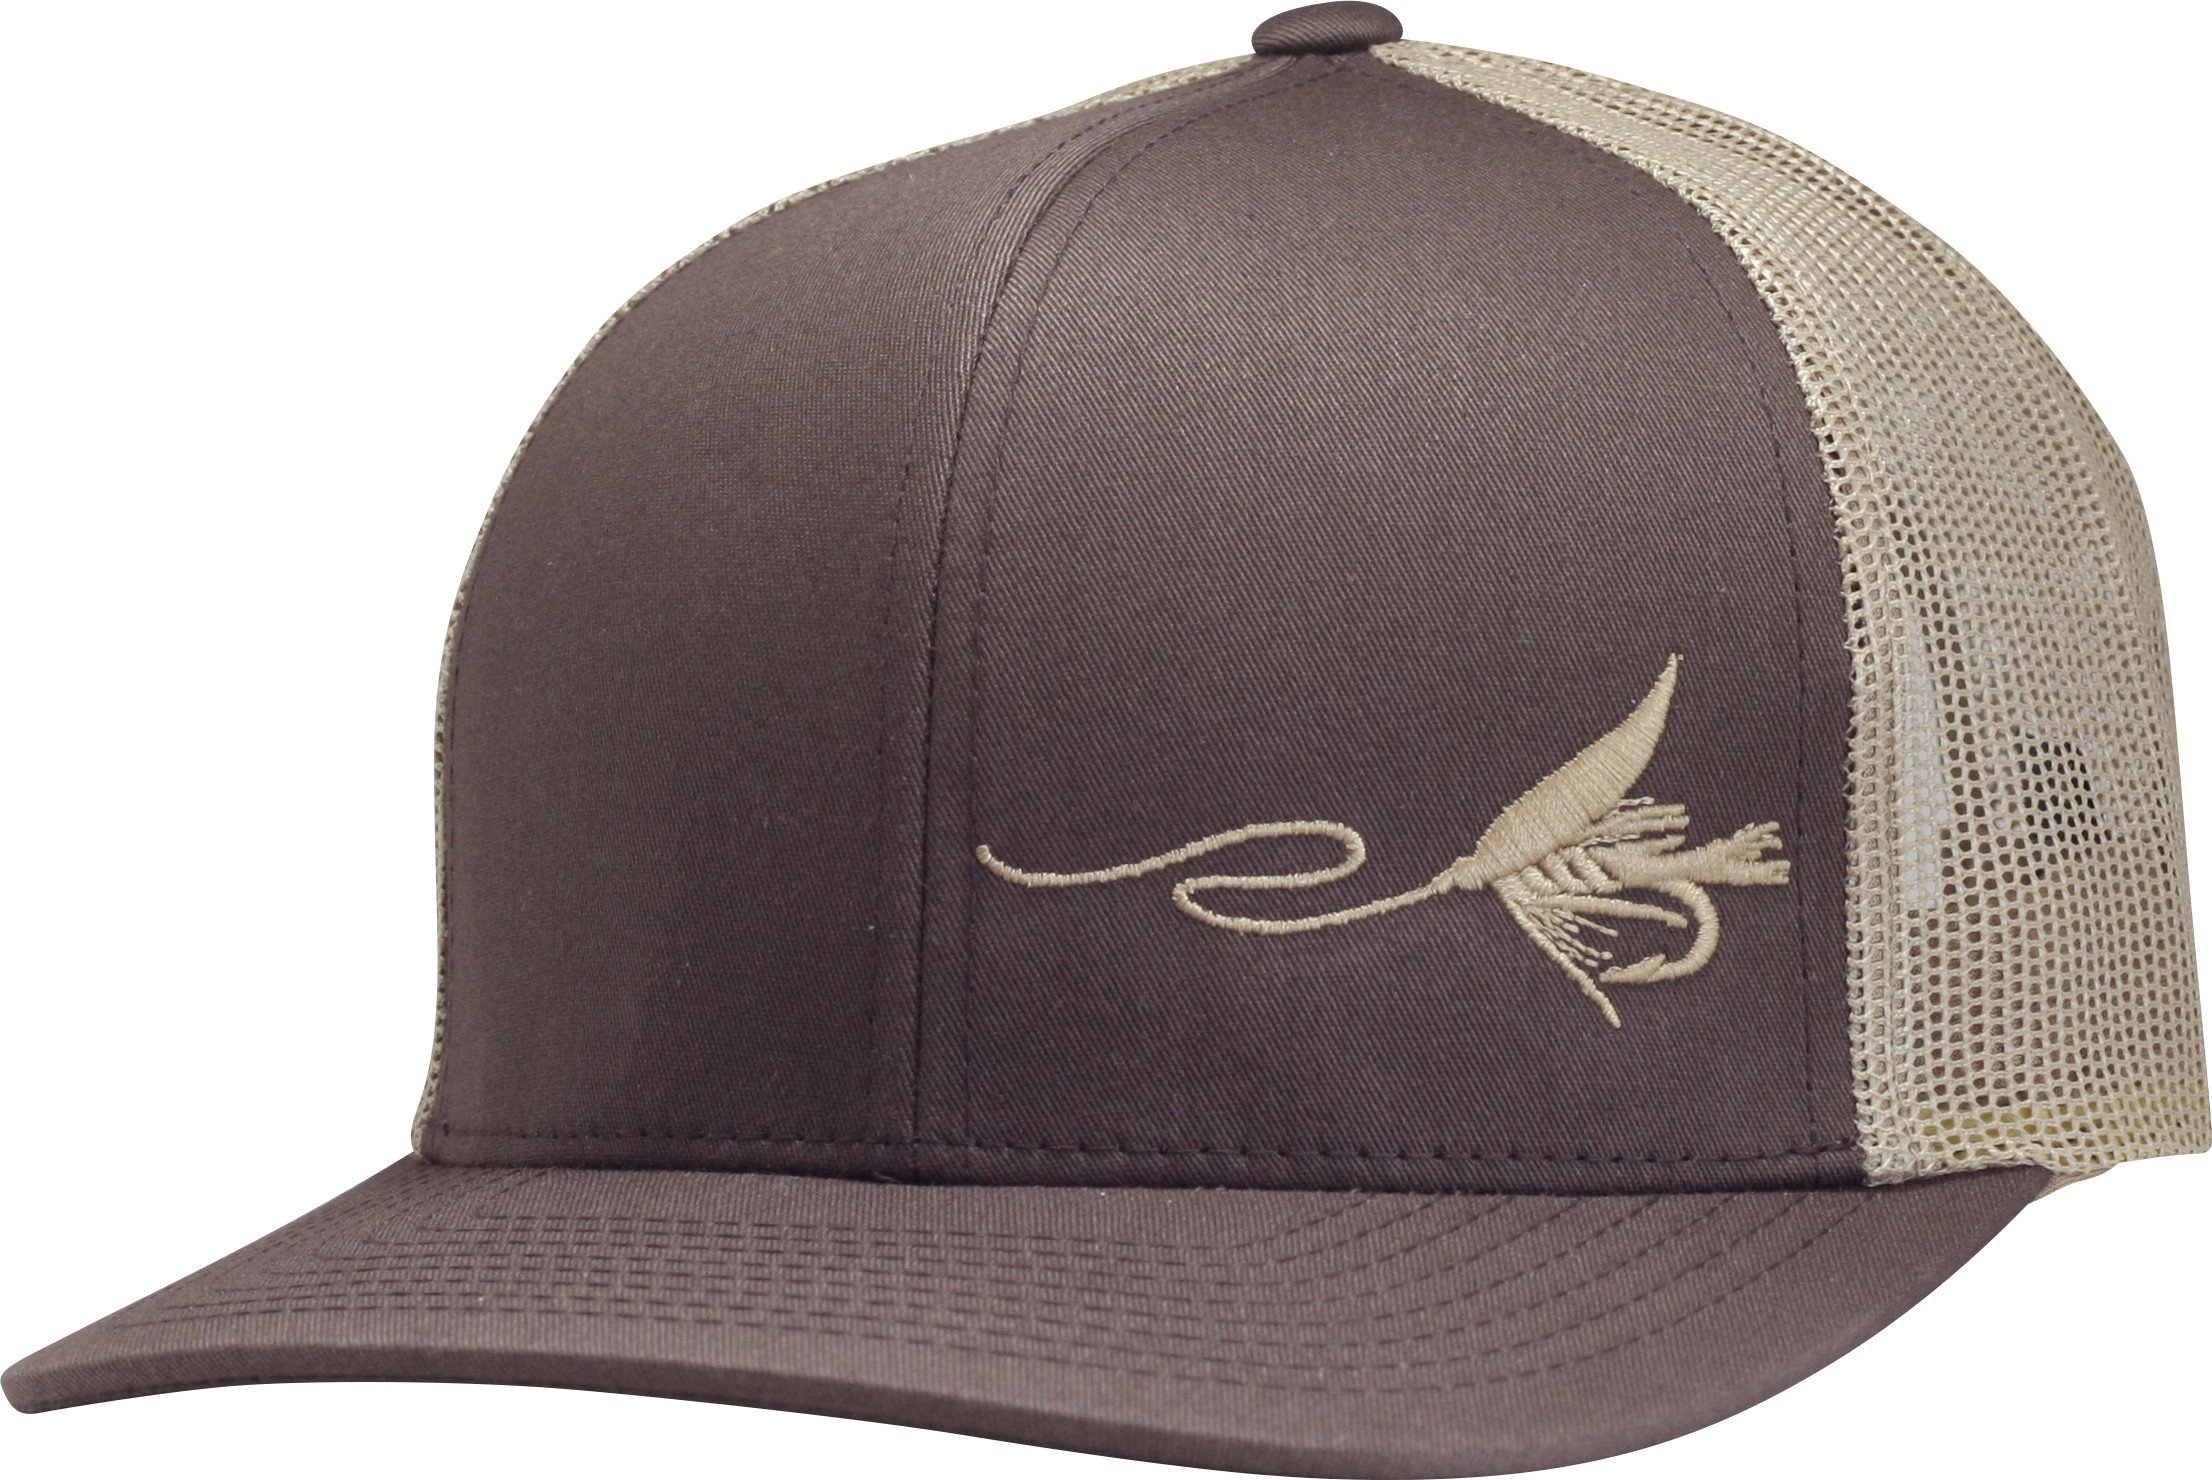 Lindo Trucker Hat - Fly Fishing (Brown tan) 1a9132dda67